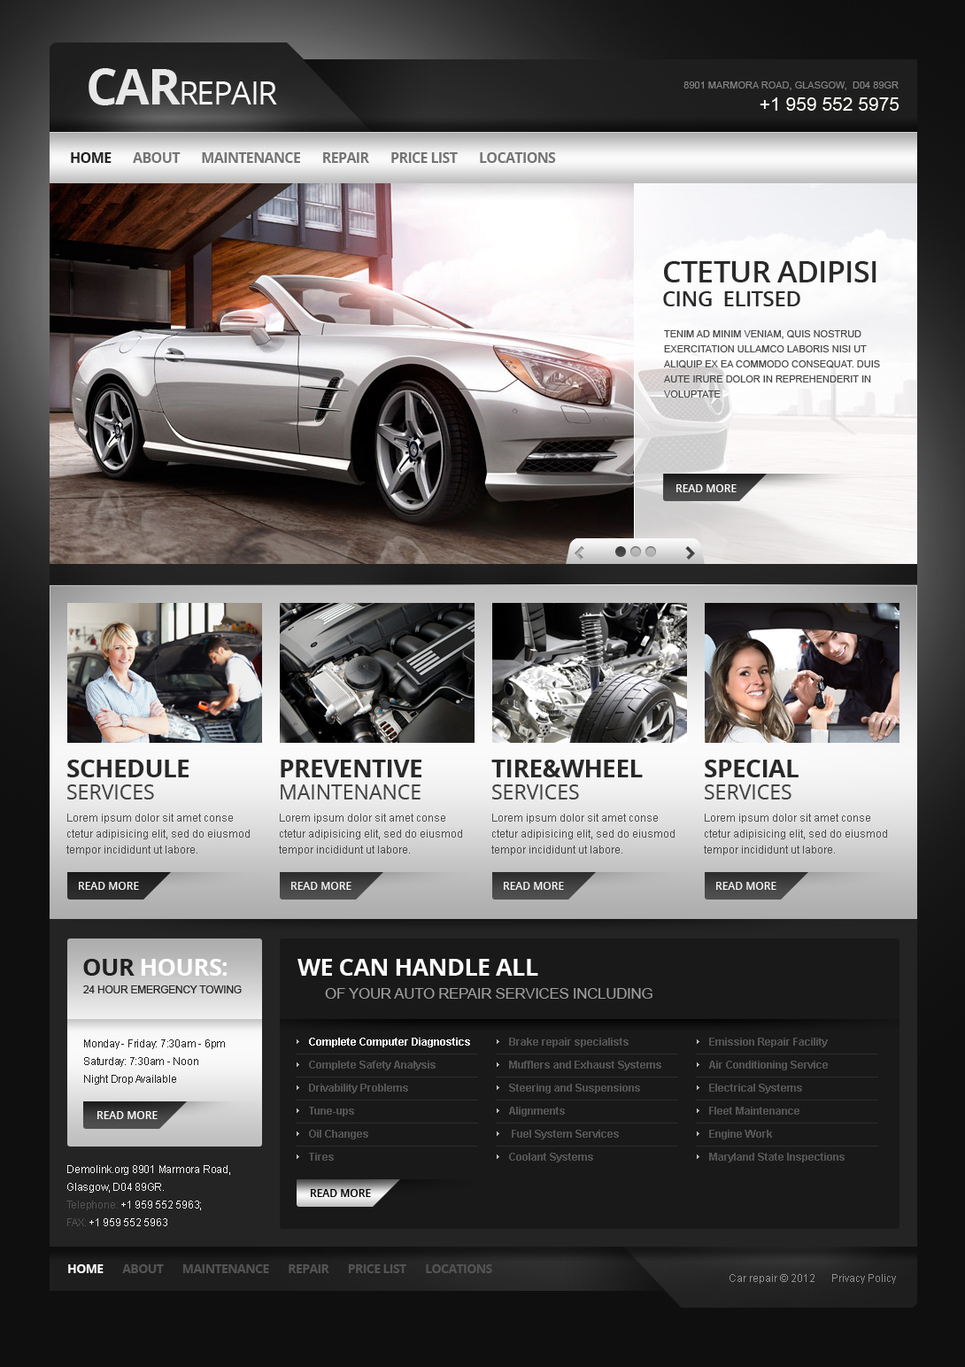 Car Repair Template with jQuery Image Slider and Dark Background - image